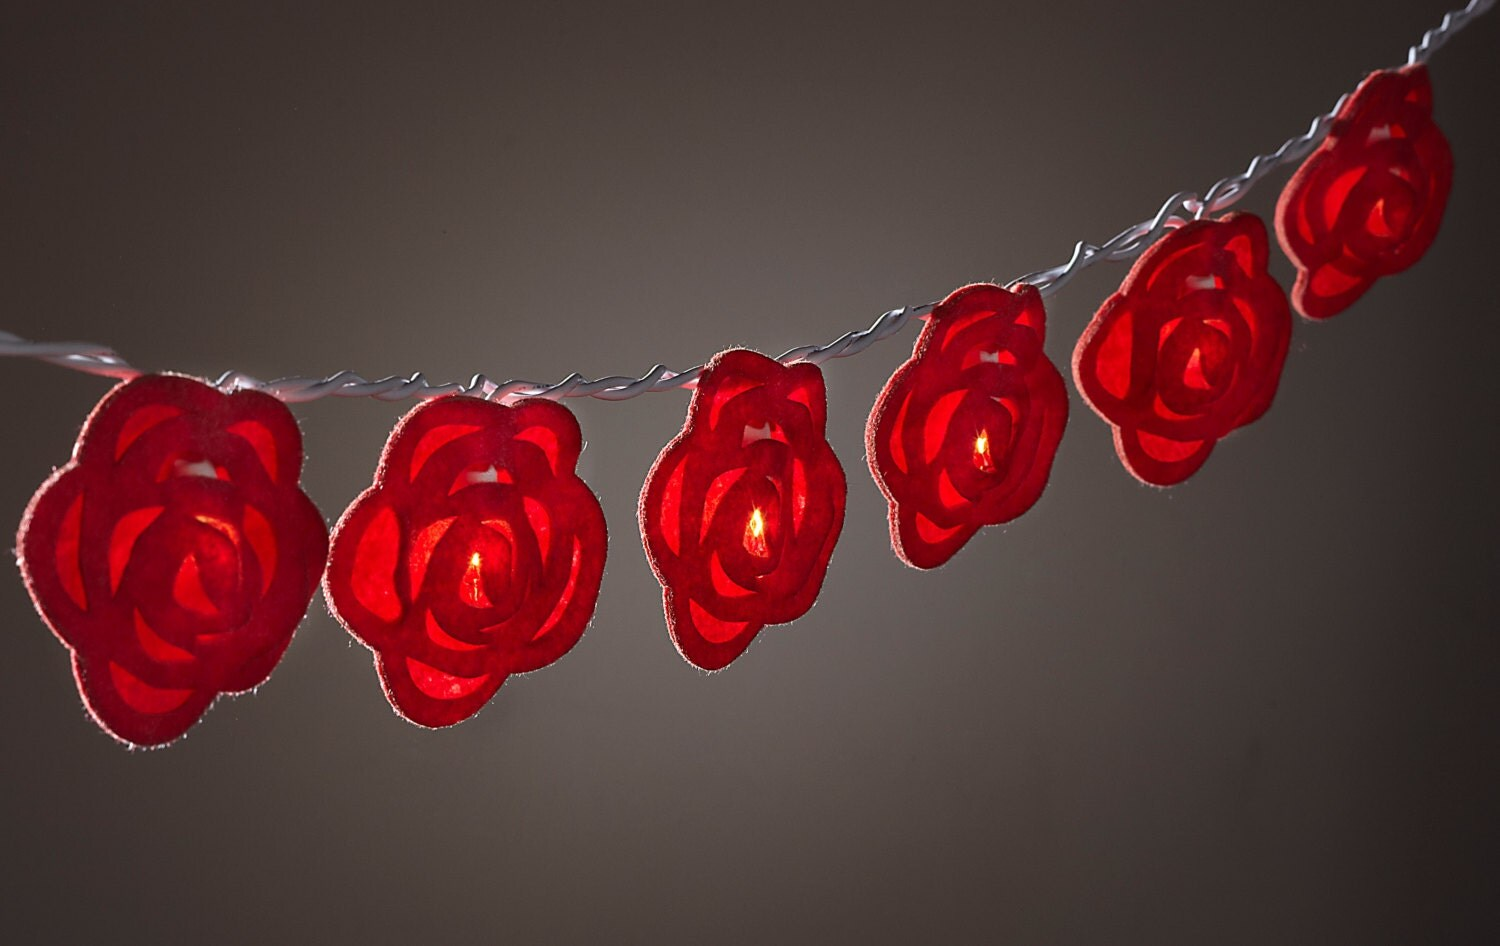 String Lights Cover Photo : Items similar to 20% Off String Light Covers - Festive - Strawberry Red on Etsy